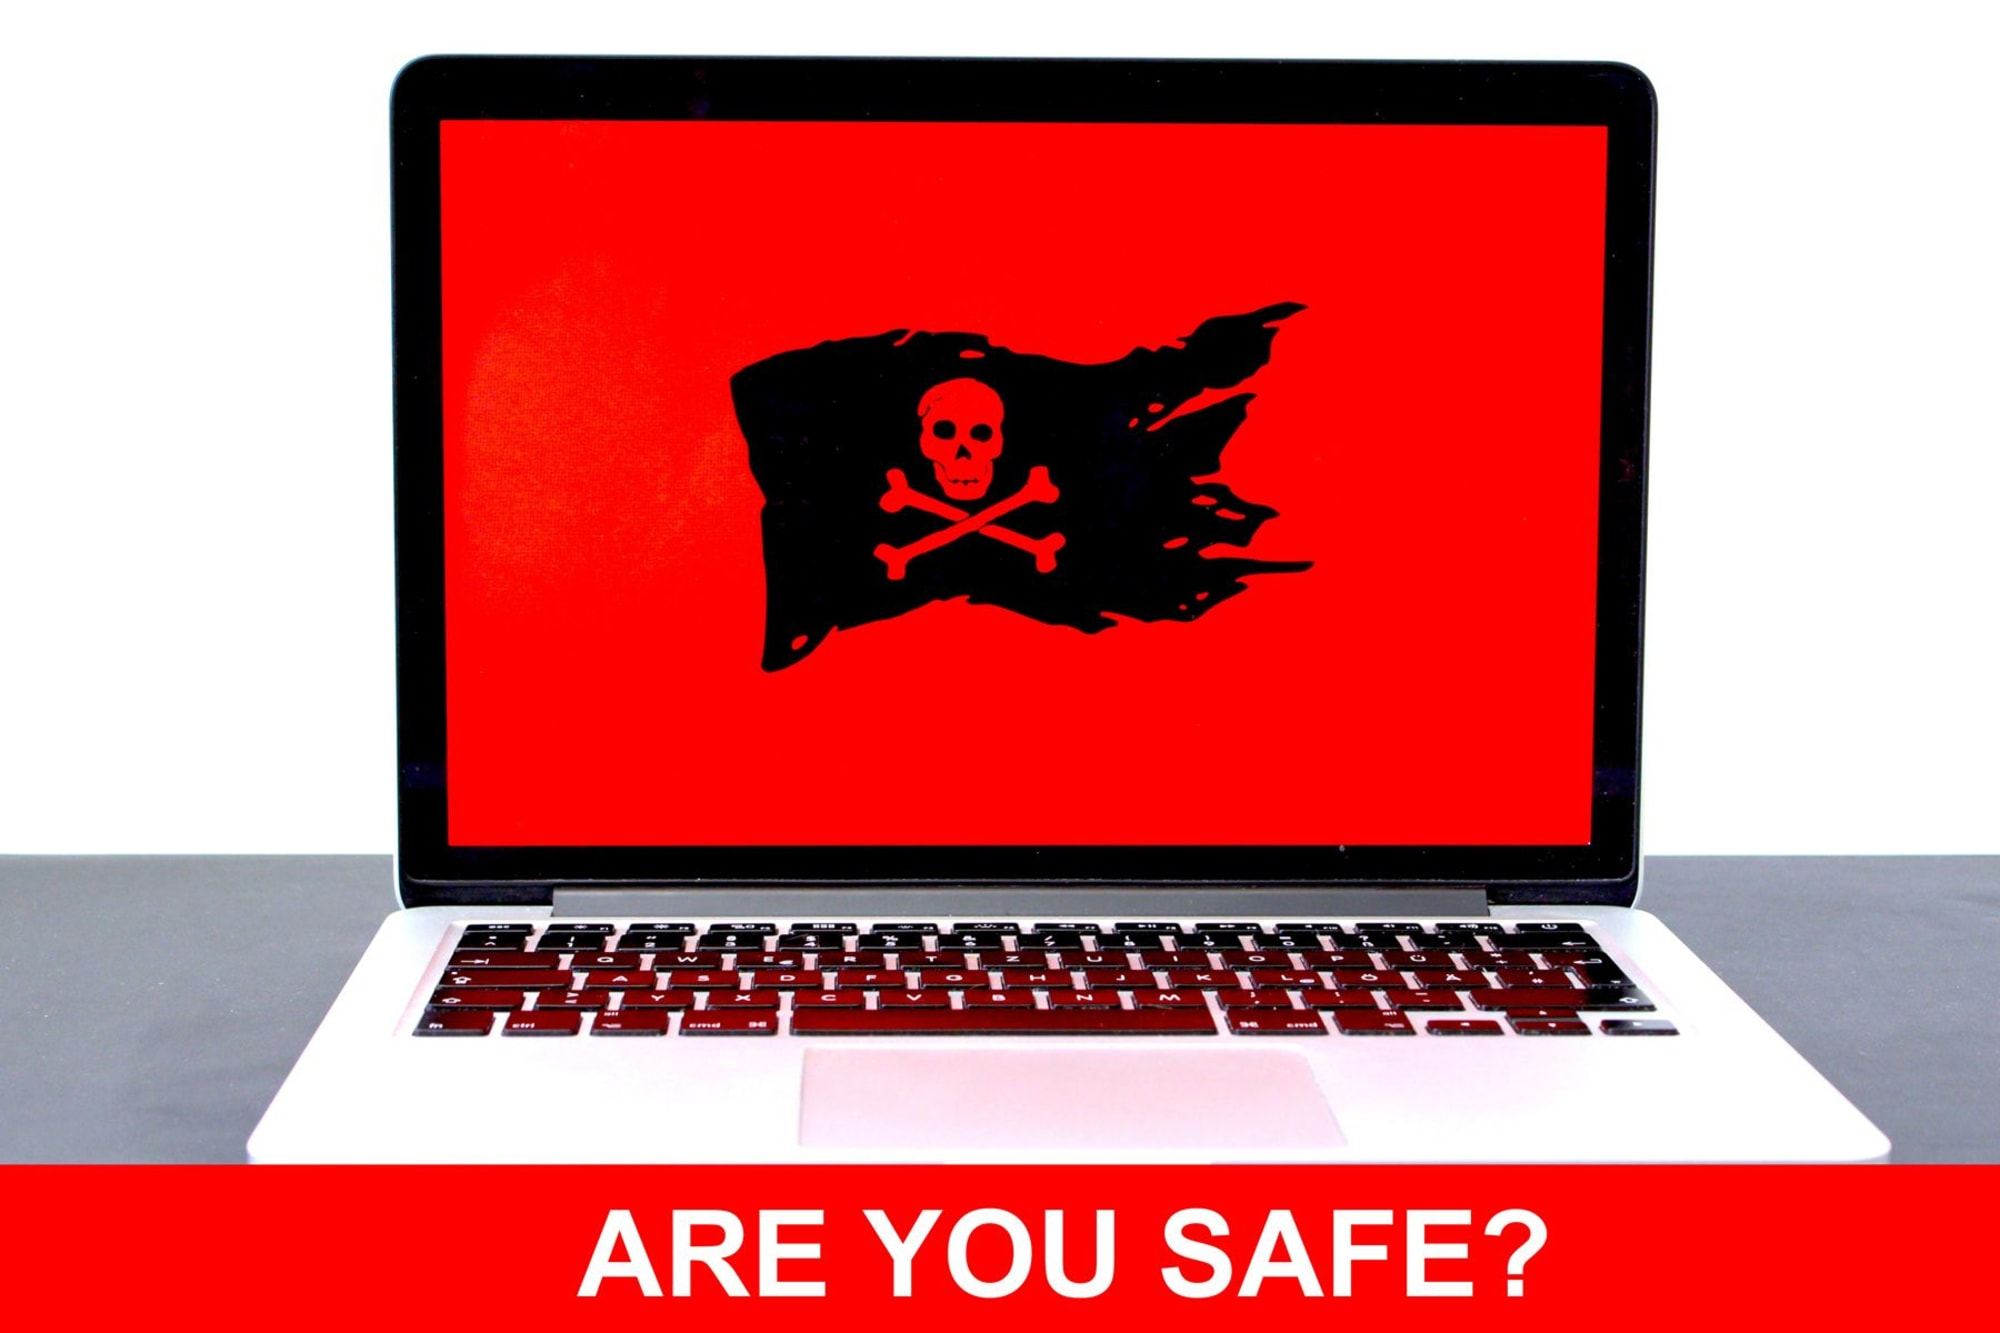 Beware! Are you safe? How to protect your information before going online